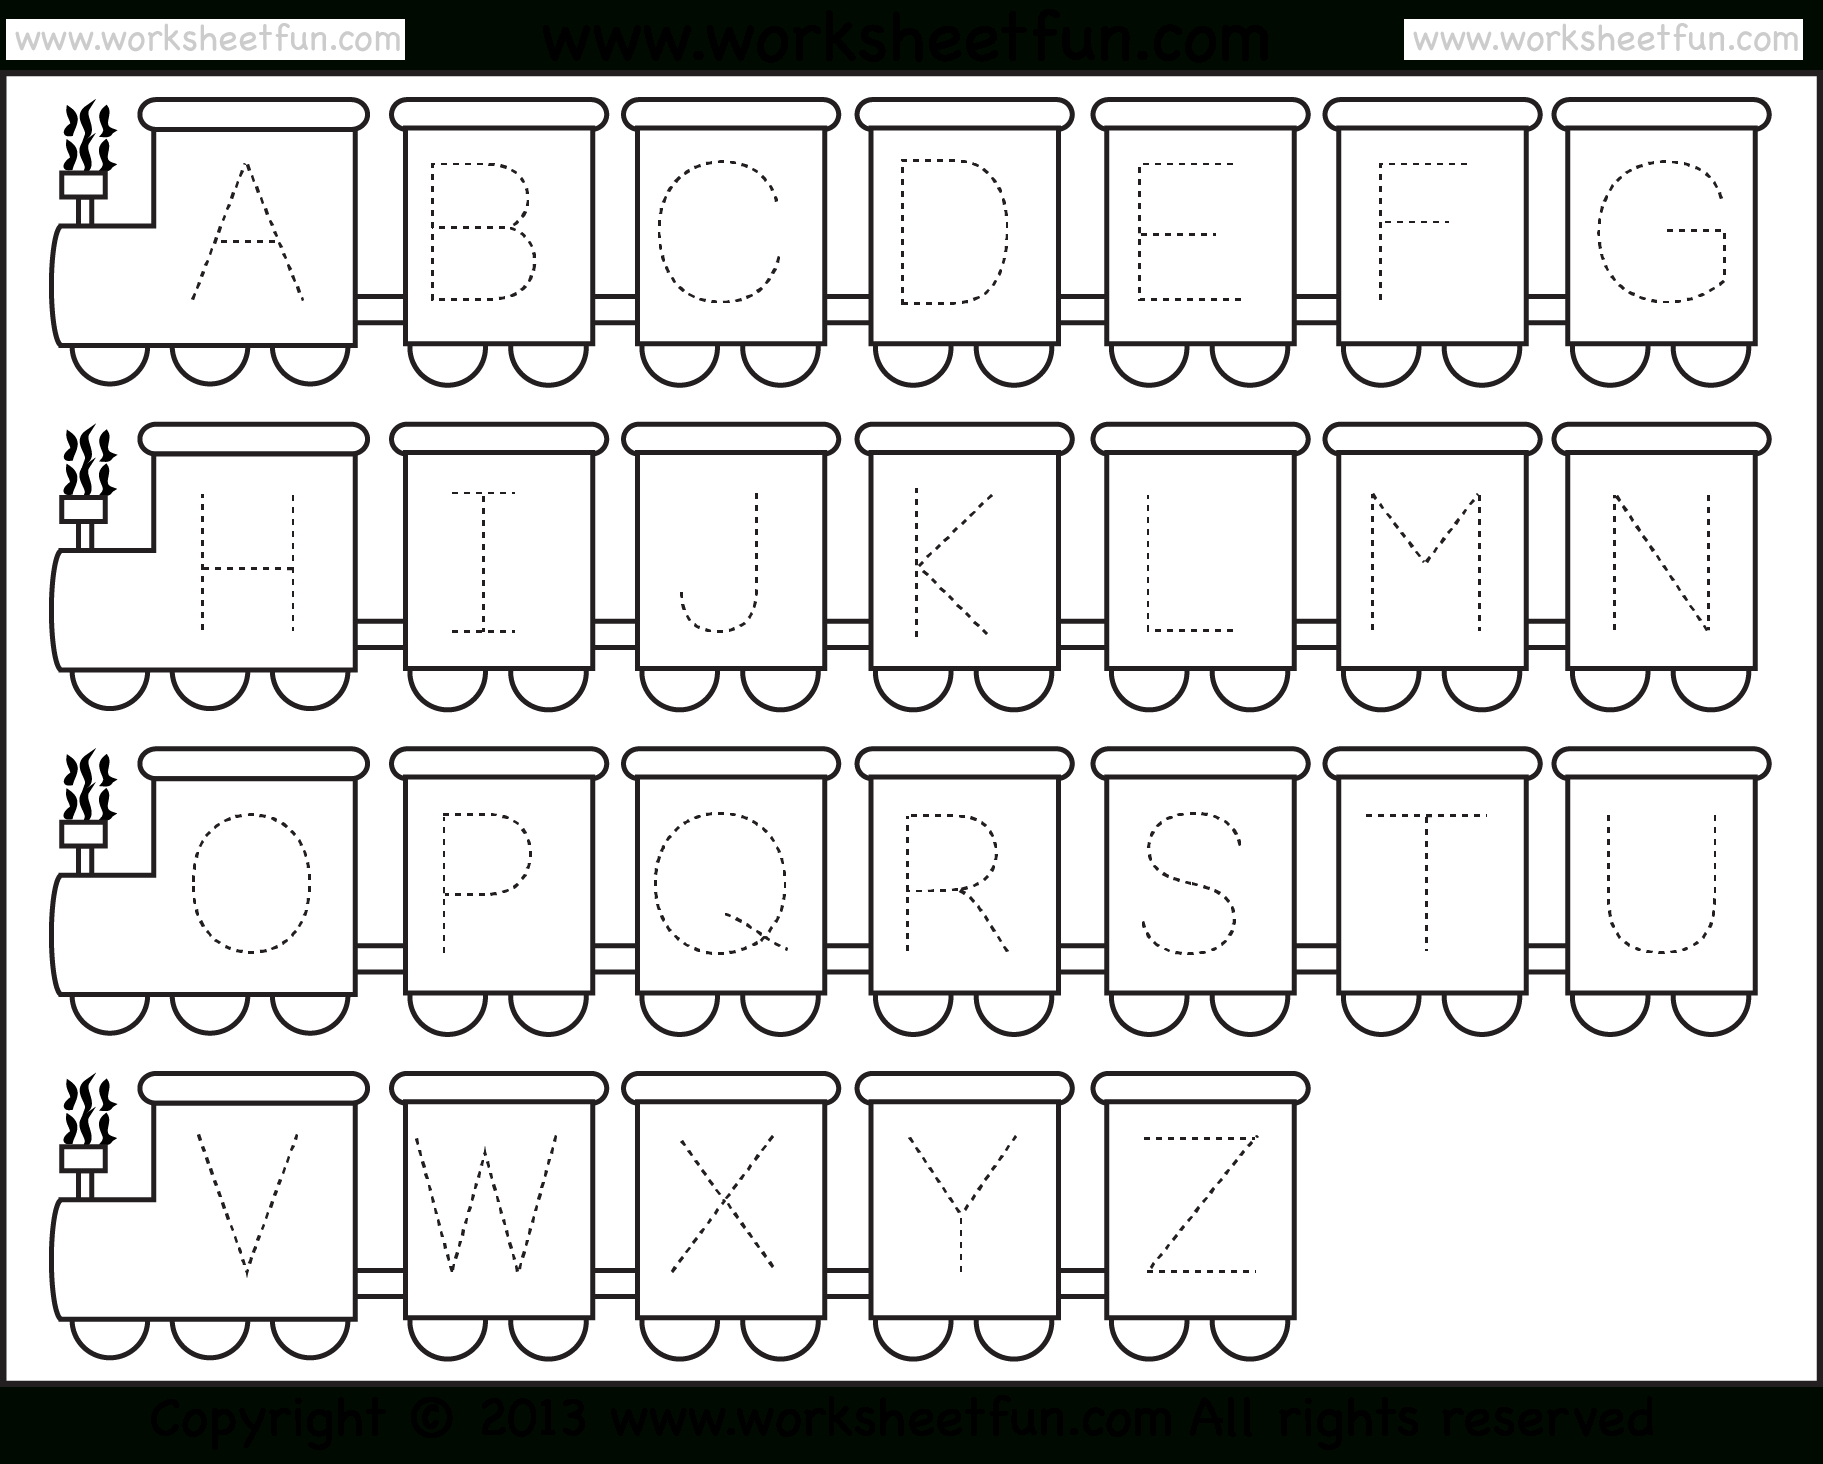 Letter Tracing Worksheet – Train Theme / Free Printable Worksheets | Letter Tracing Worksheets Free Printable